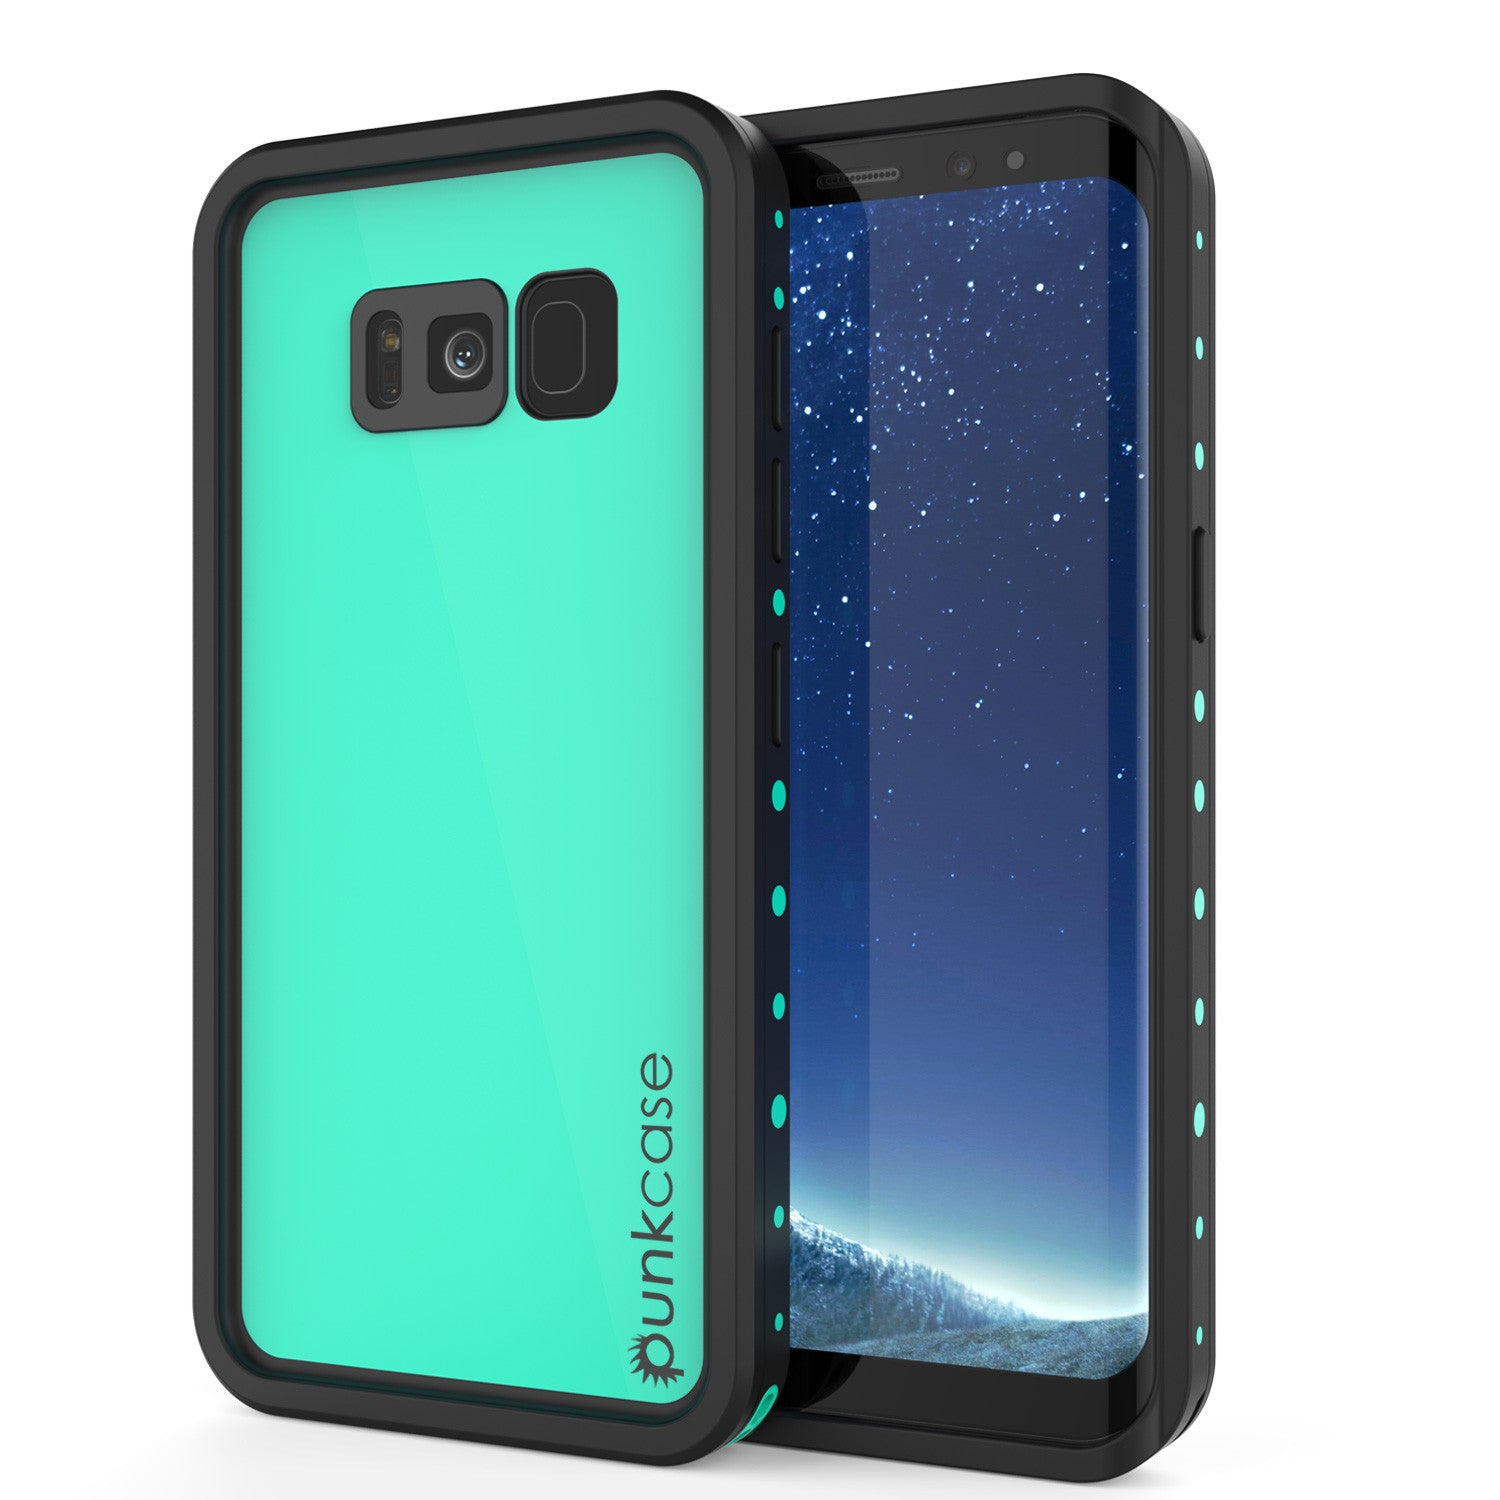 Galaxy S8 Plus Waterproof Case PunkCase StudStar Teal Thin 6.6ft Underwater IP68 Shock/Snow Proof